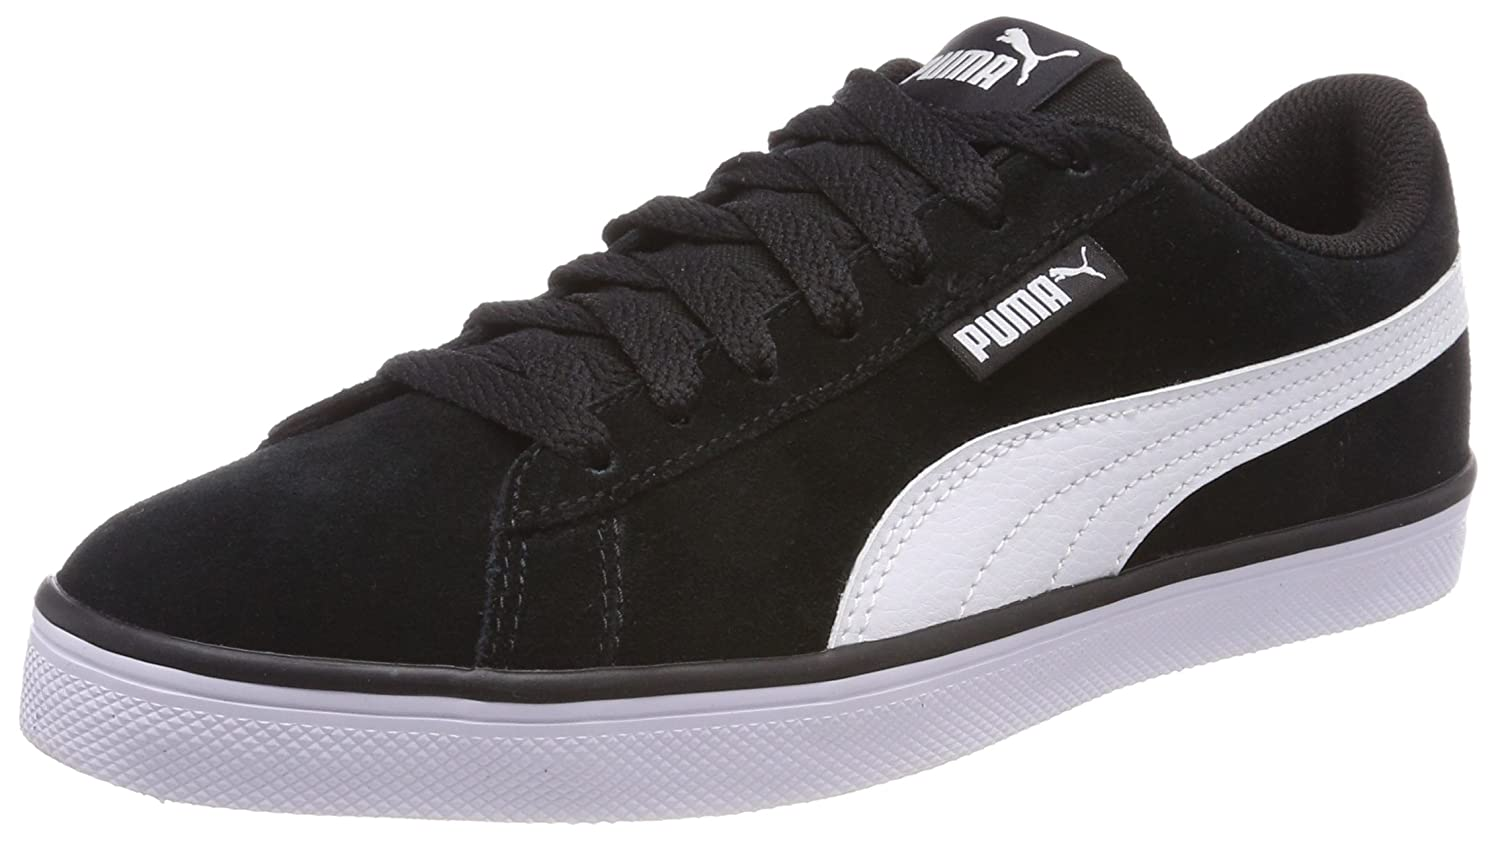 TALLA 37 EU. Puma Urban Plus SD, Zapatillas Unisex Adulto